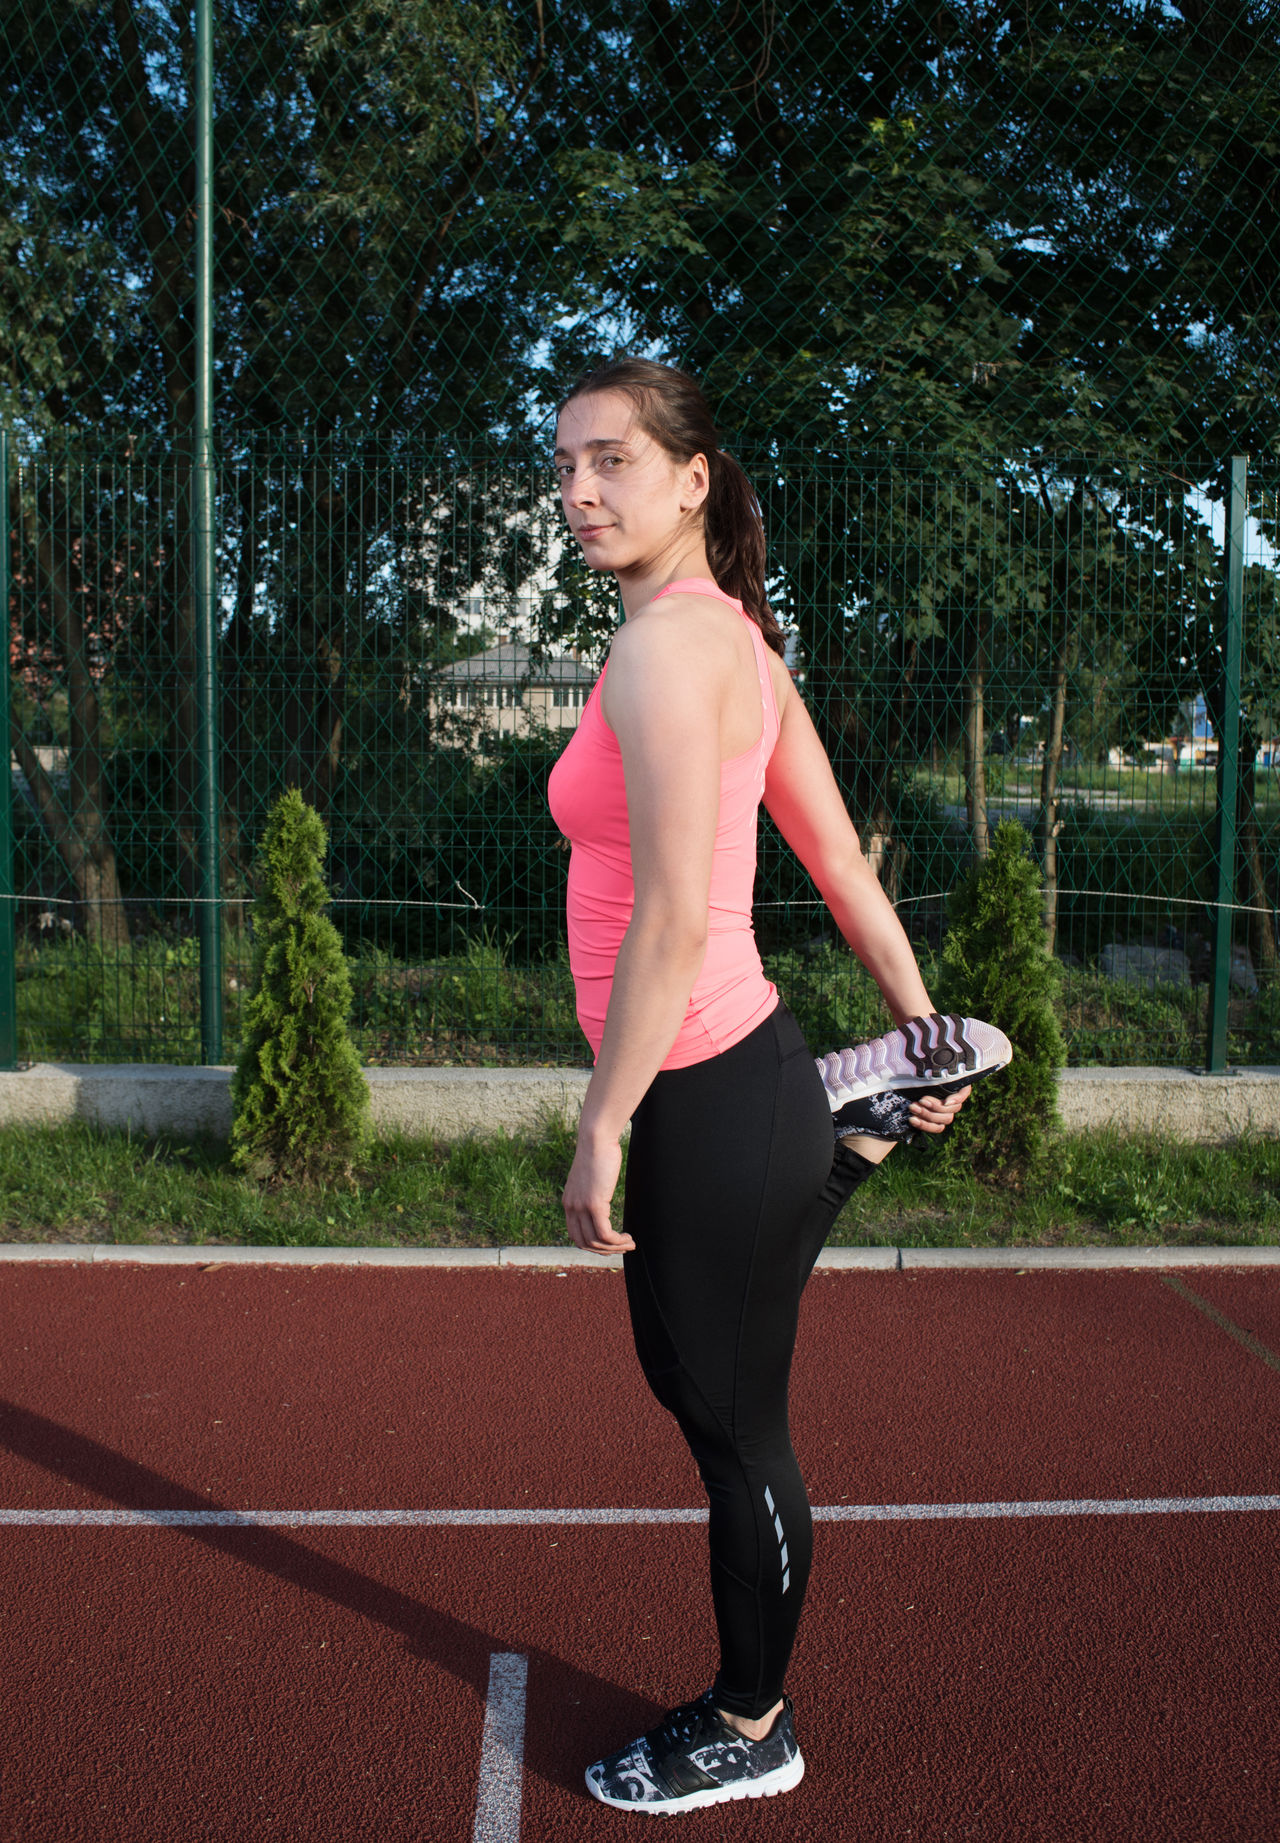 athlete stretching Adult Adults Only Athlete Challenge Day Exercising Full Length Human Body Part Lifestyles Looking Down One Person One Woman Only Only Women Outdoors People Pink Color Running Track Self Improvement Side View Sport Sports Clothing Sports Track Sports Training Standing Vitality